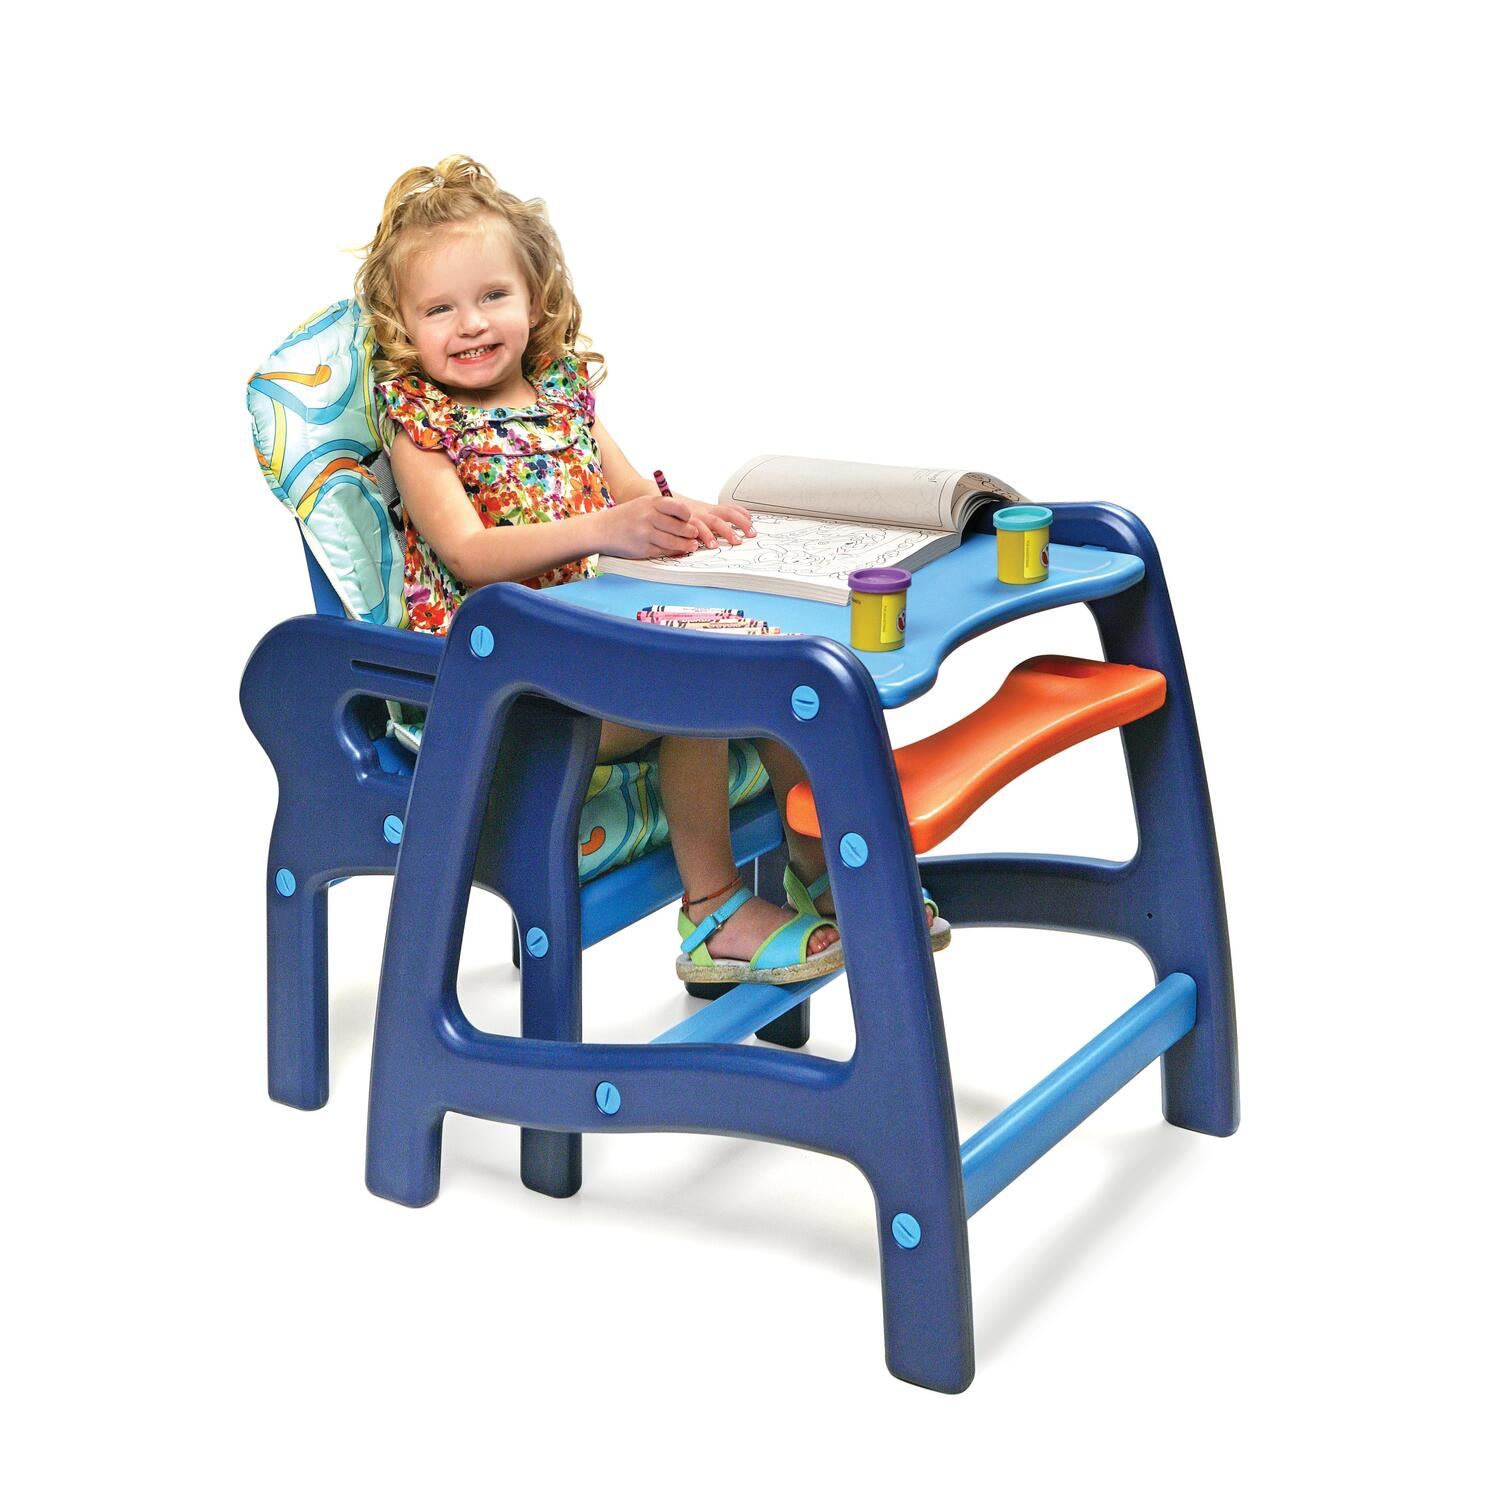 Child Sitting In Chair At Table